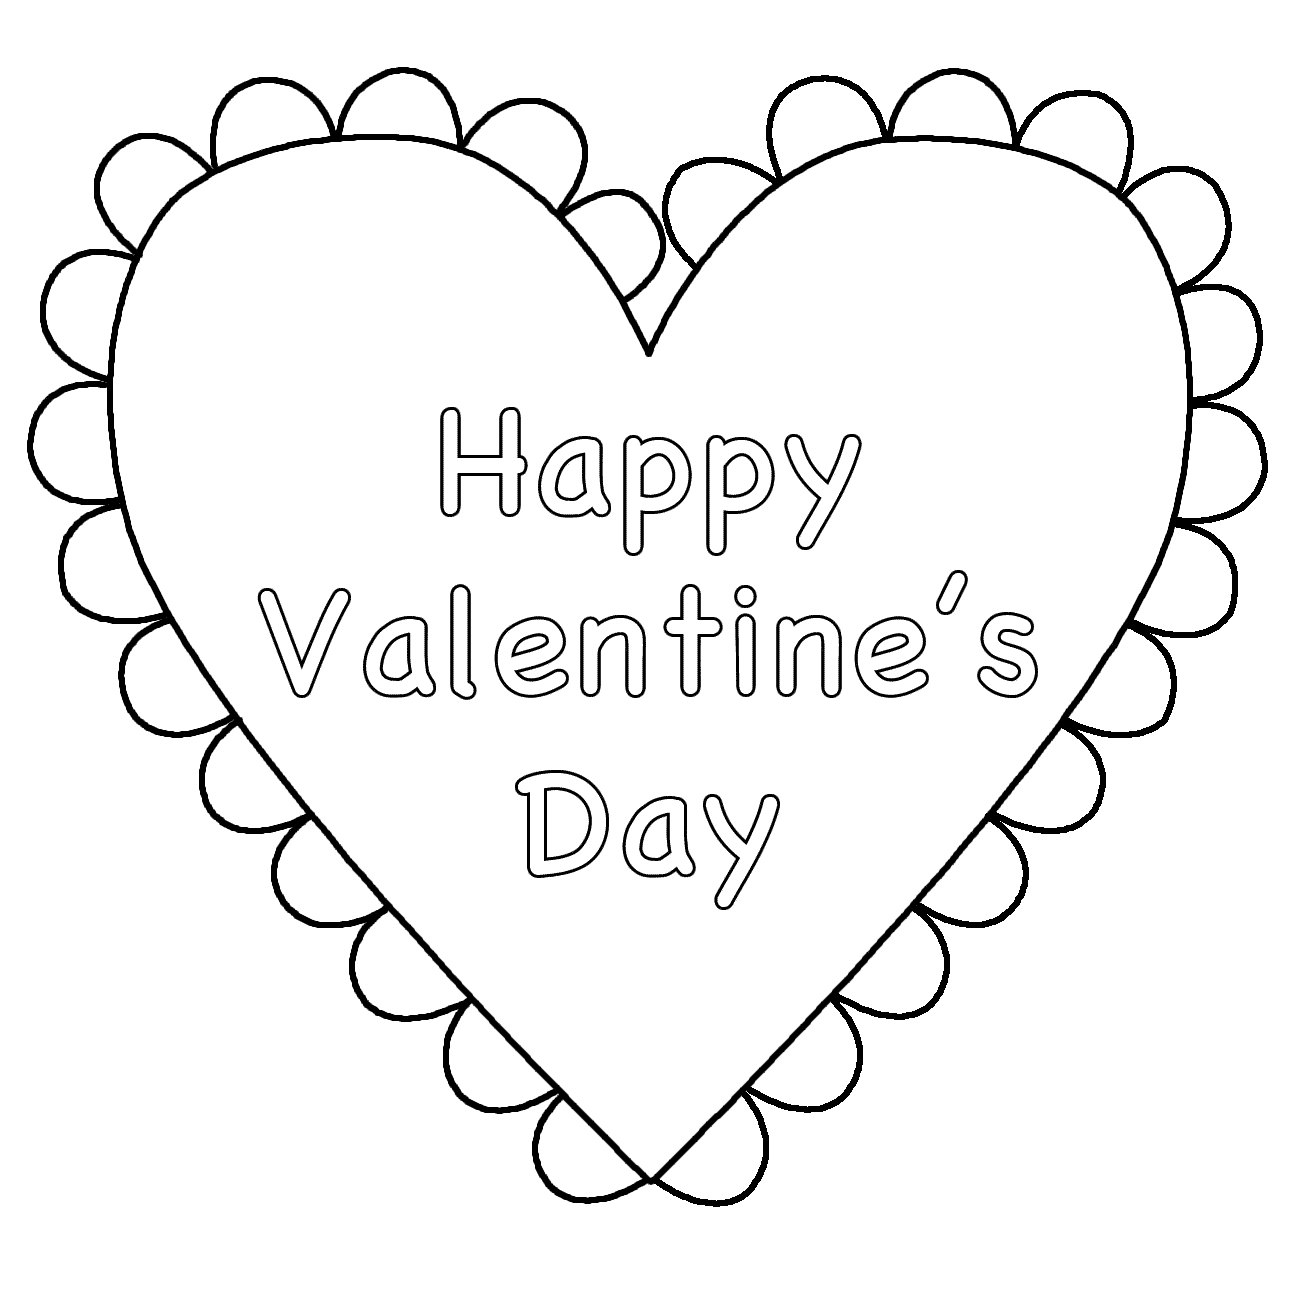 Free Coloring Pages Hearts Coloring Ideas Printable Valentines Day Coloring Pages K Hearts